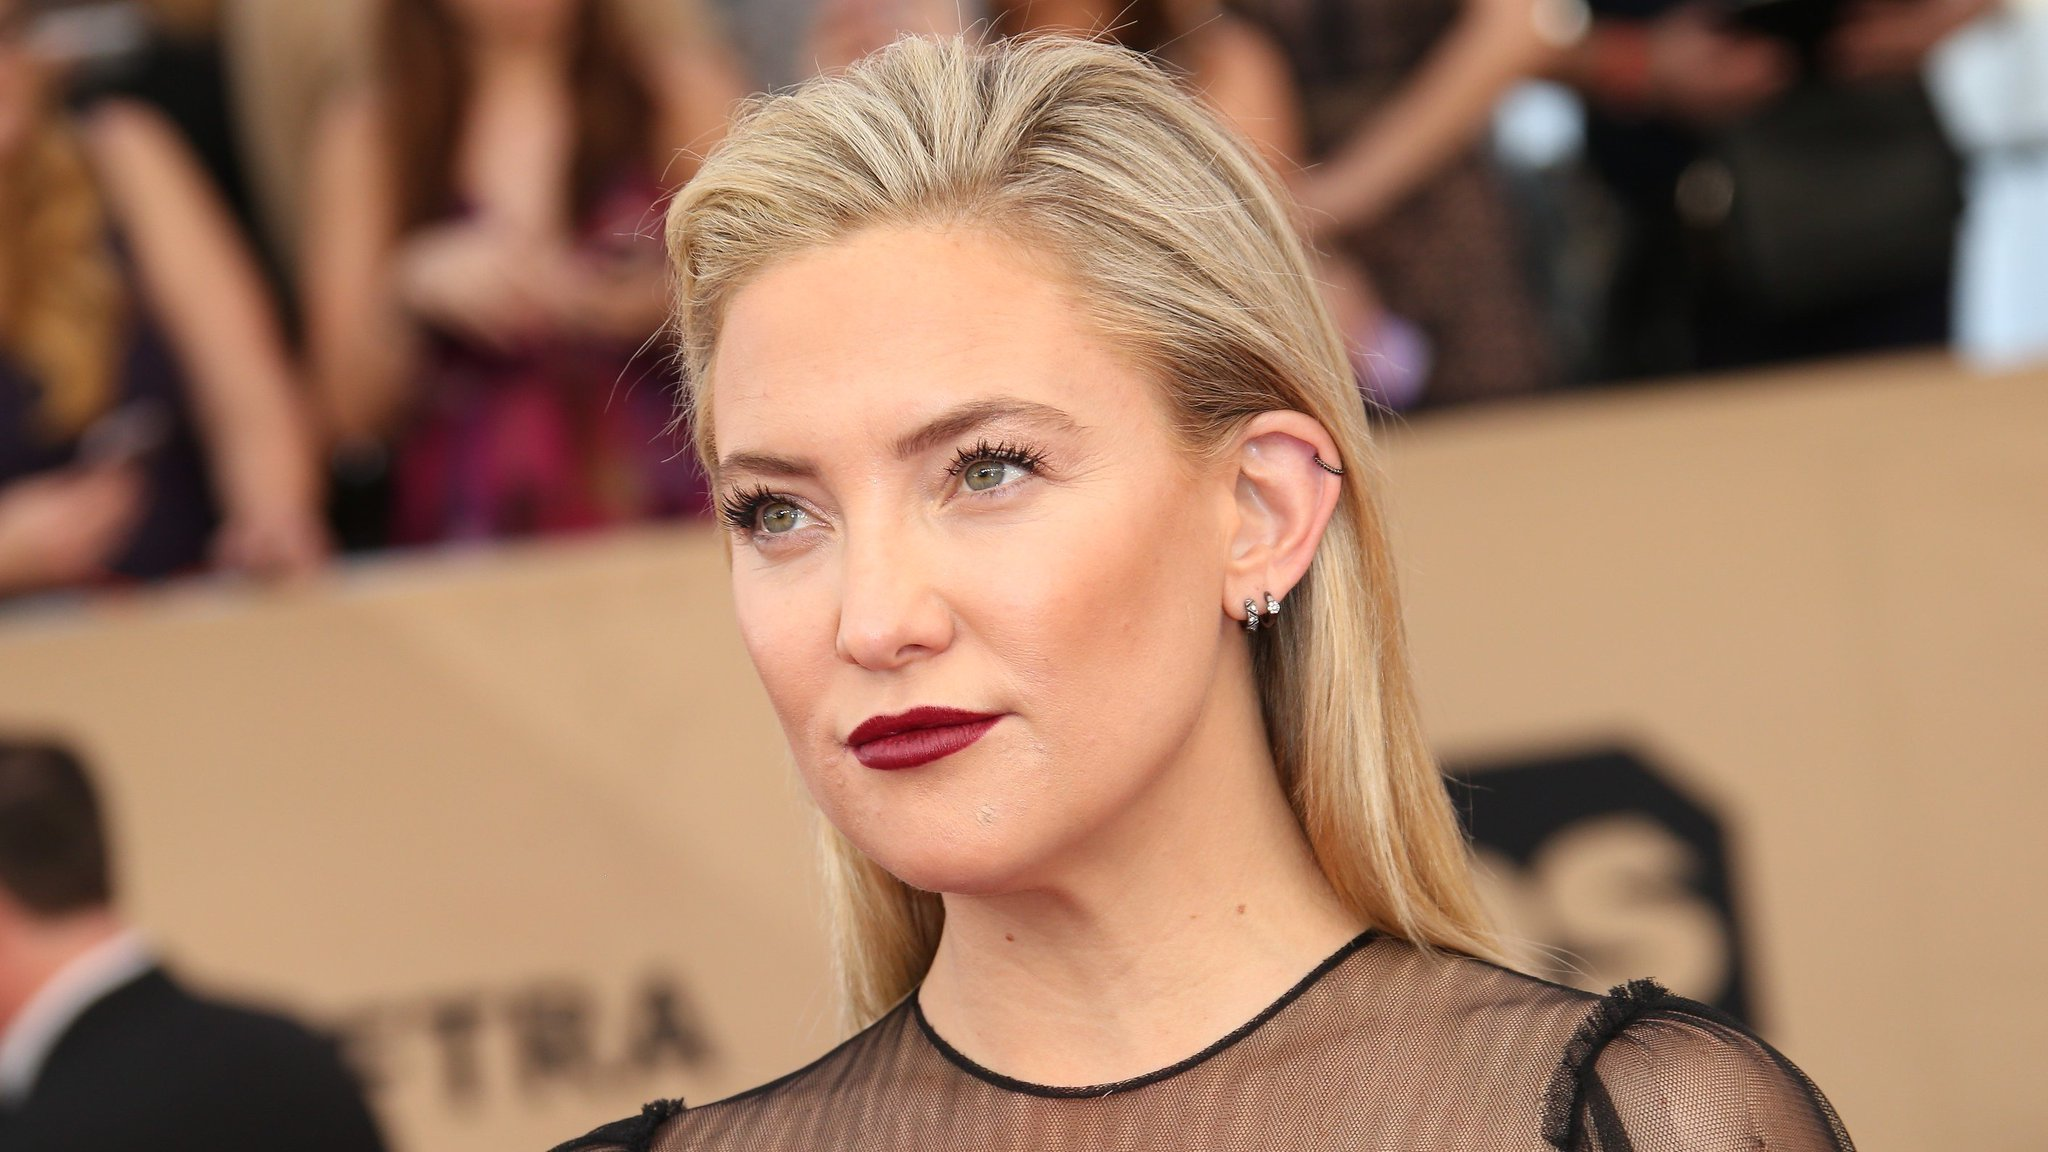 Kate Hudson shaved her head, and the pic will legit make your jaw drop: https://t.co/bxHgP1qwsM https://t.co/IZ1jILM1ti